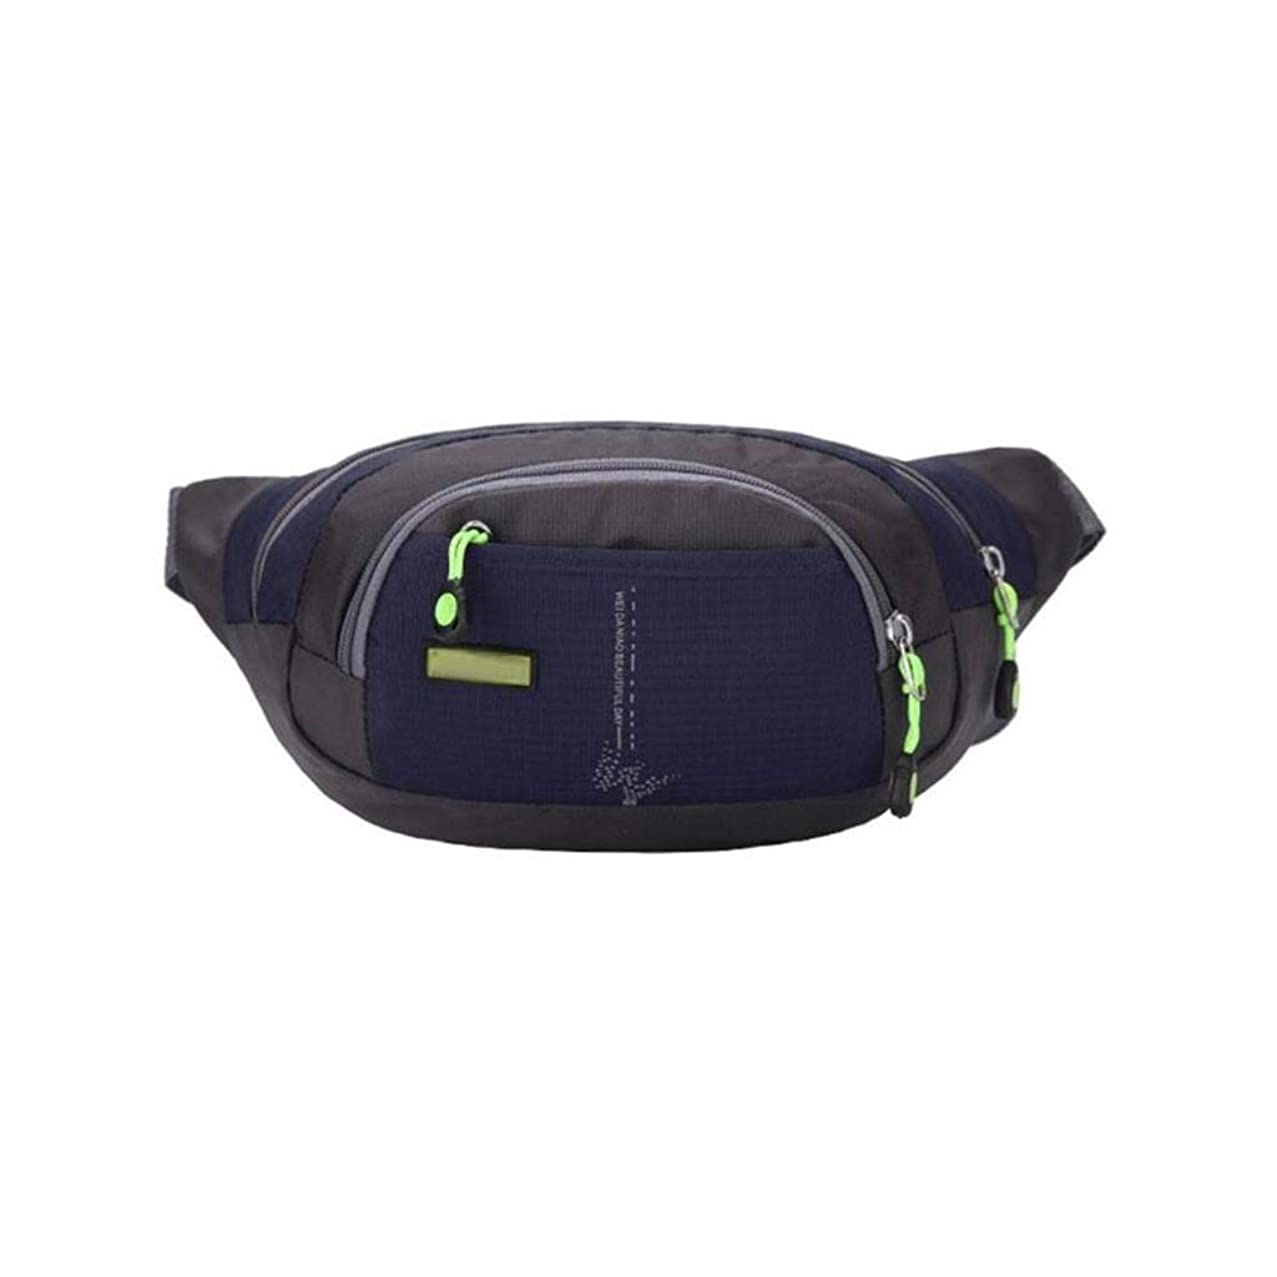 Waist Pack Fashion Bumbag Sports Sports Sports Pocket Outdoor Outdoor Chest Bag Leisure